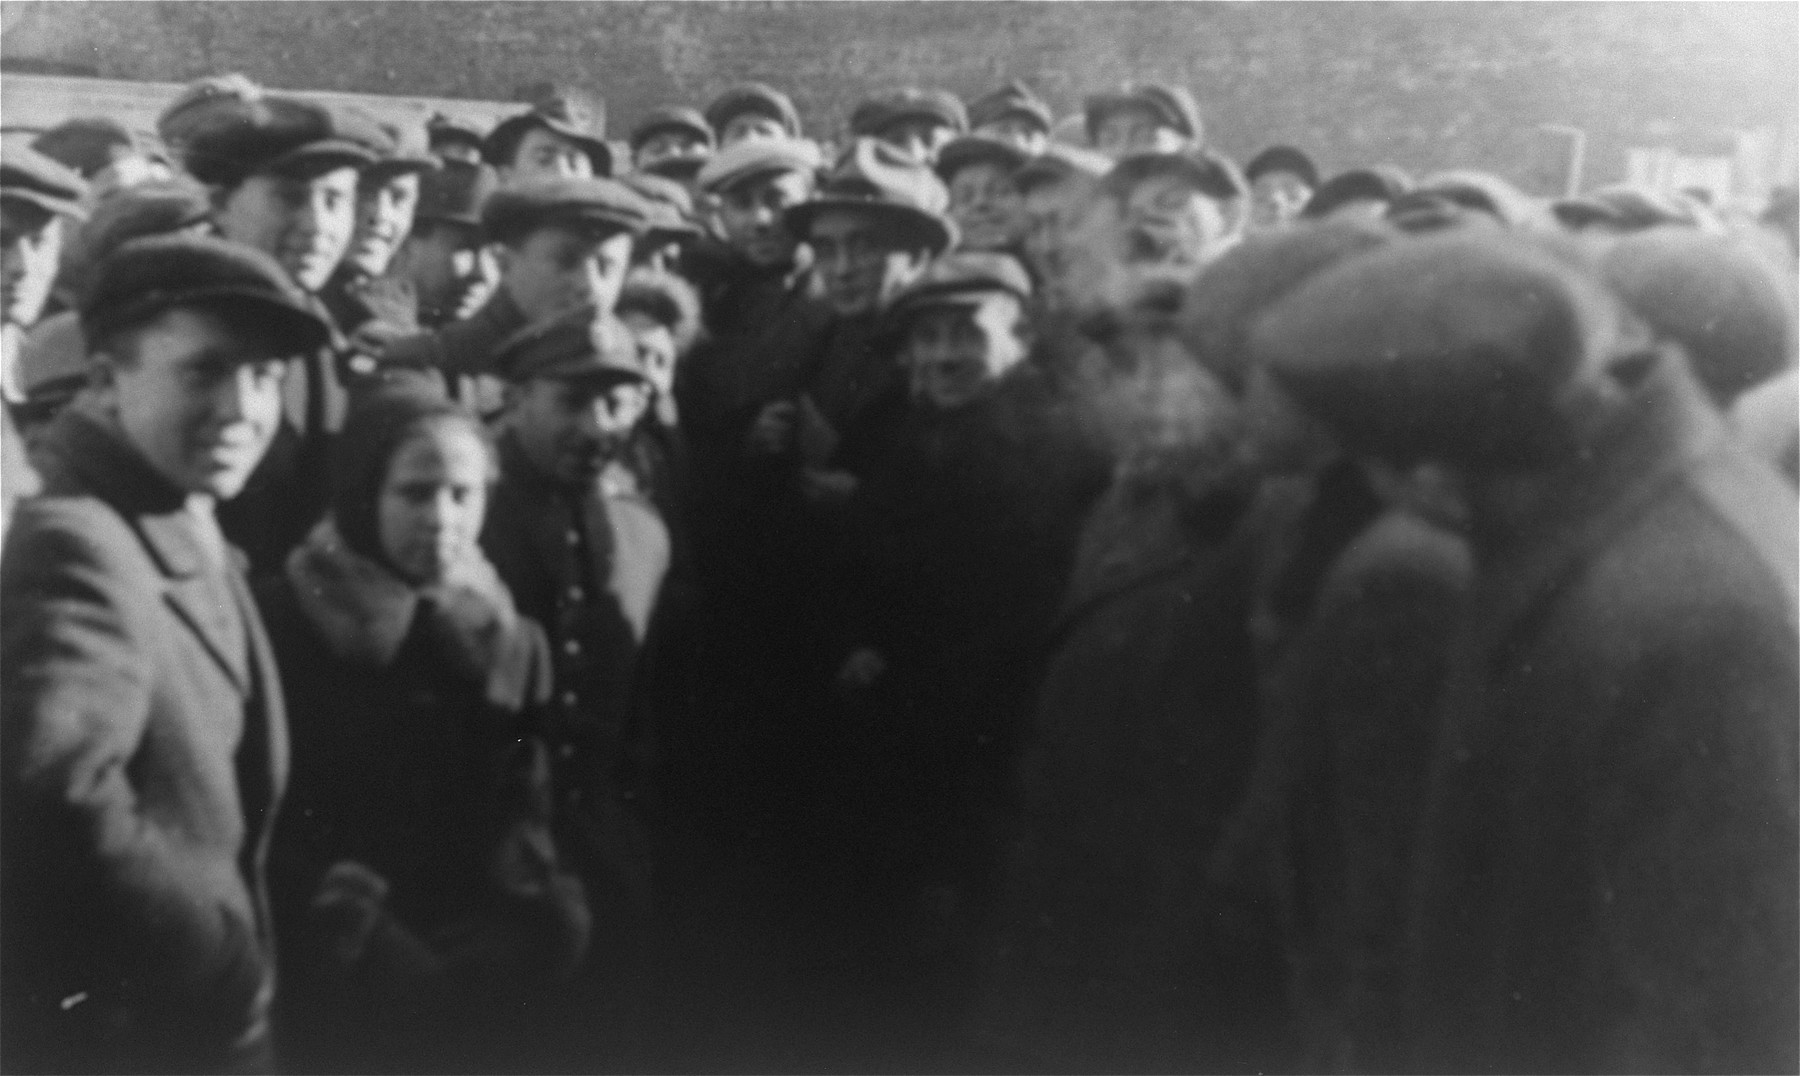 Jacob Pat, a representative of an American Jewish Labor Committee, surrounded by Jewish survivors on the site of the former Warsaw ghetto.